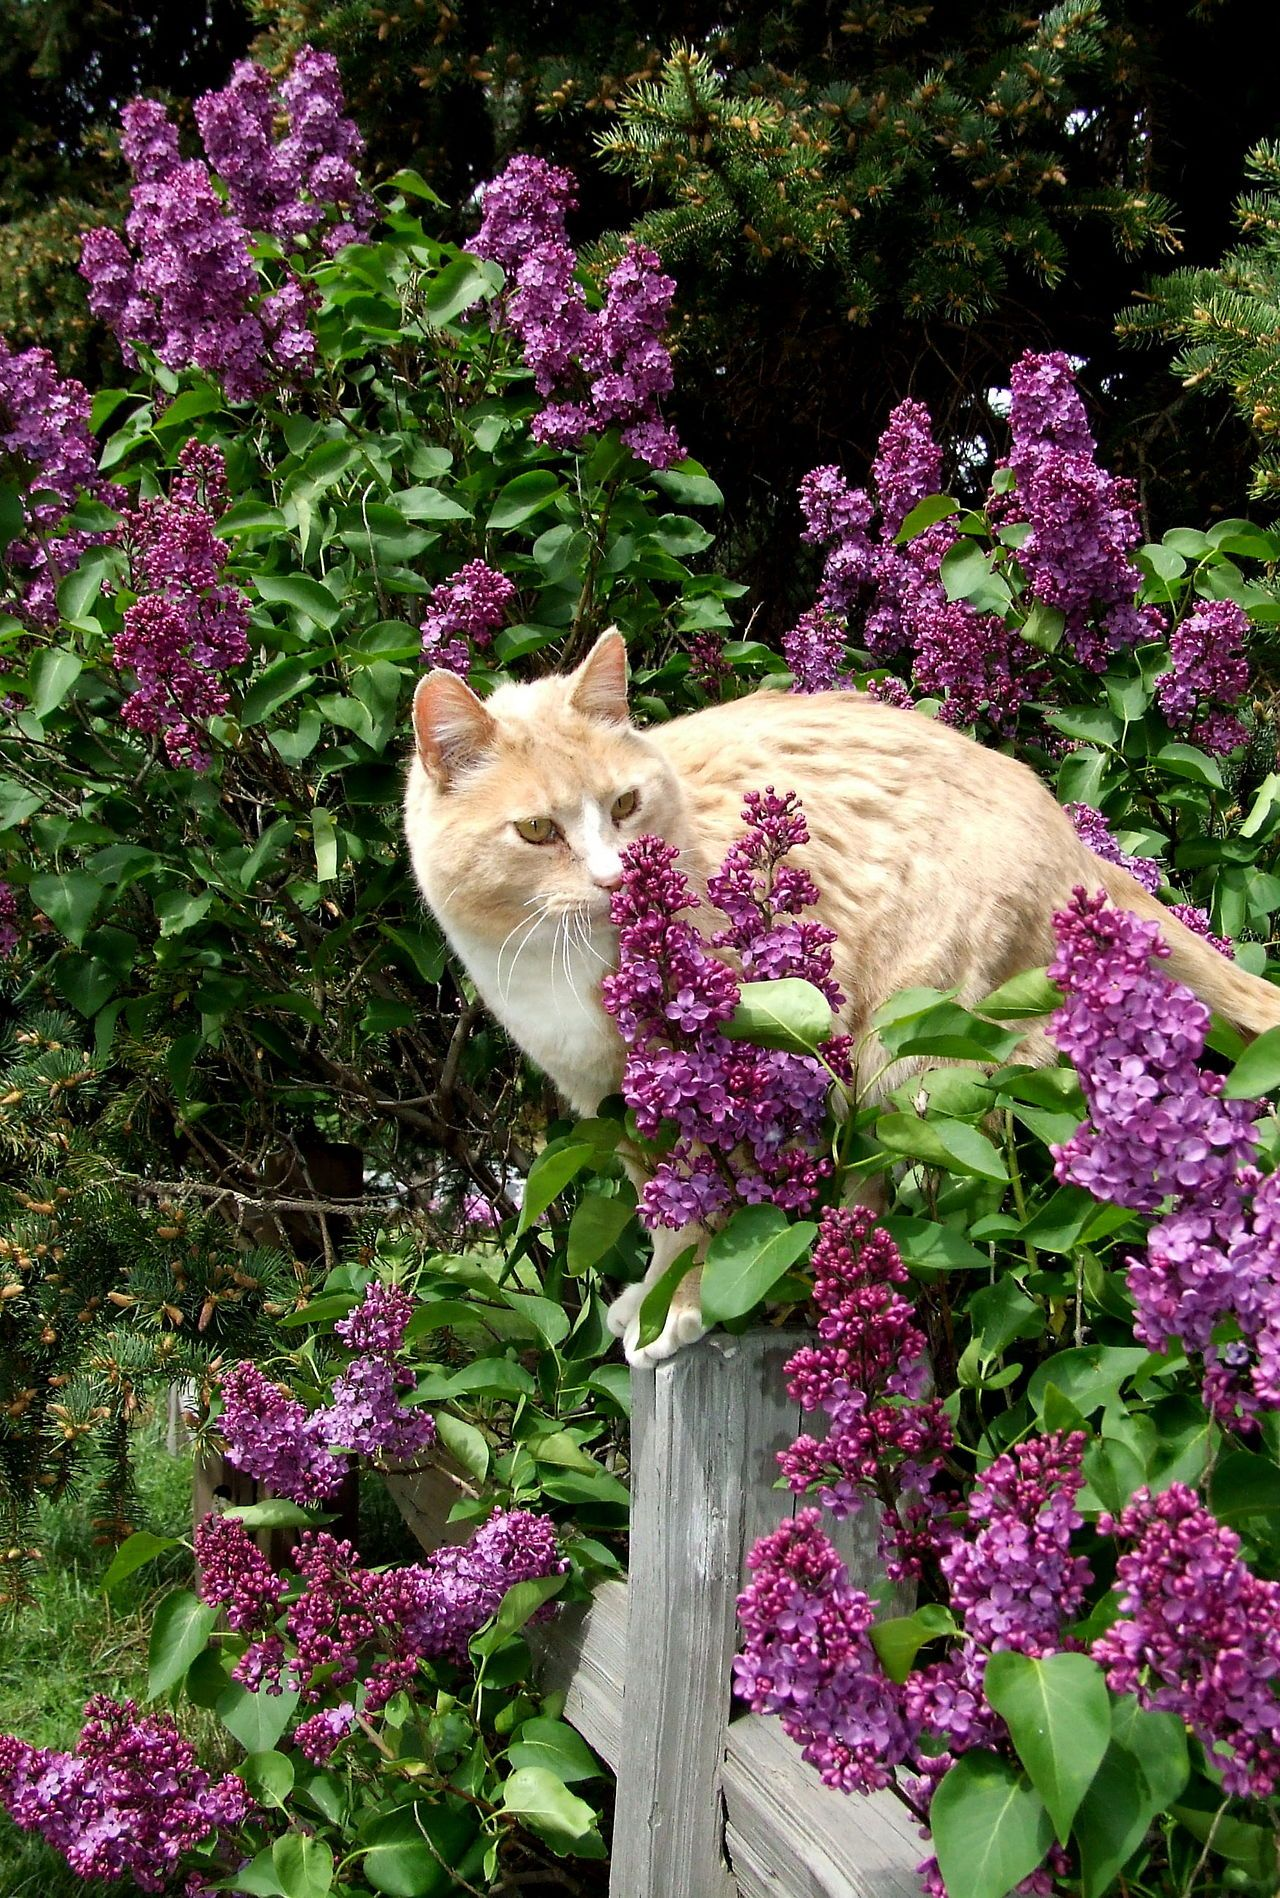 Cat on the fence: the lilac cottage ✿⊱╮X ღɱɧღ